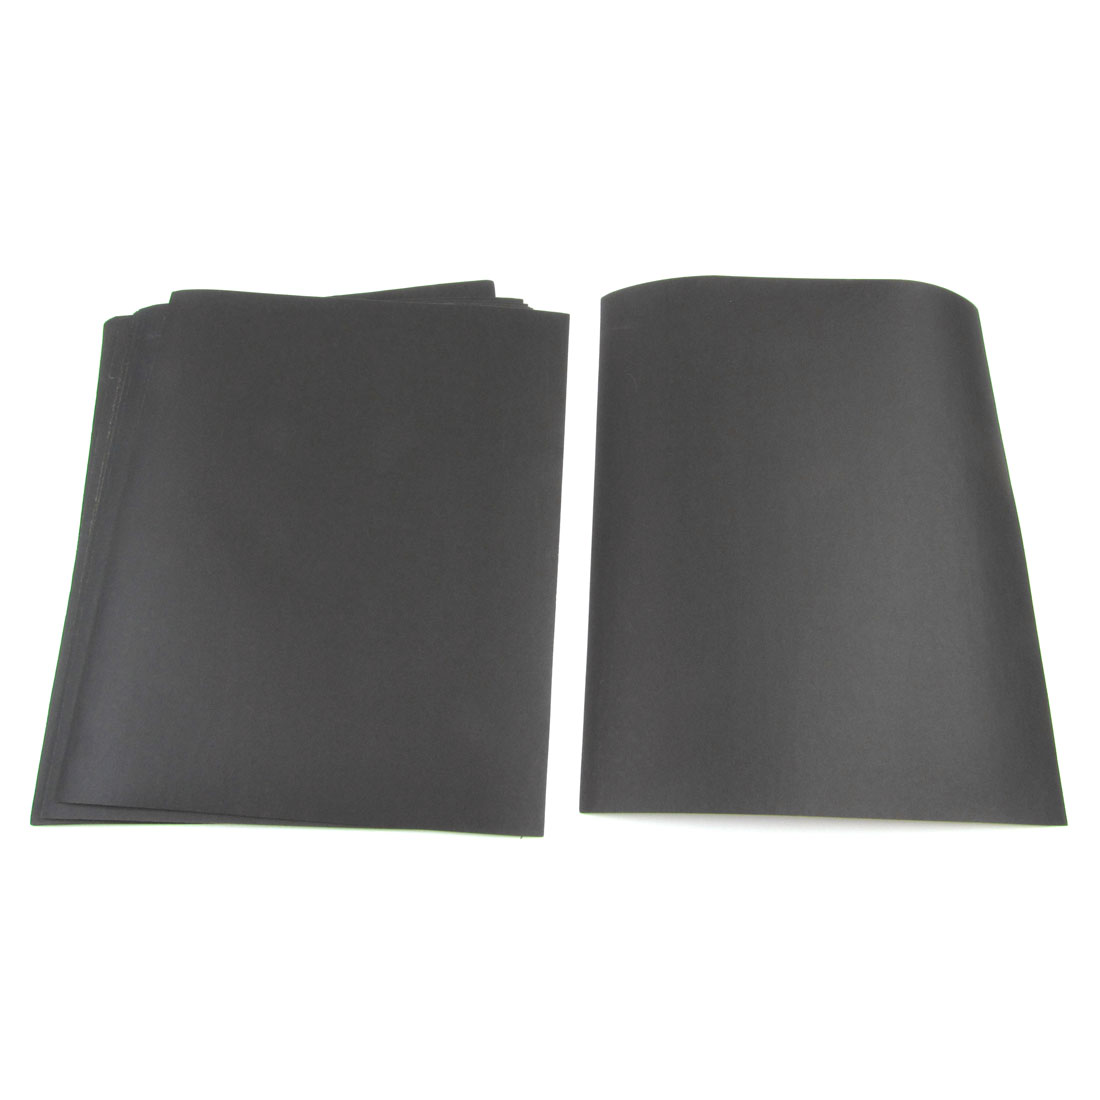 Manual Silicon Carbide Waterproof Abrasive Sandpaper Sheet 600Cw 10 Pcs